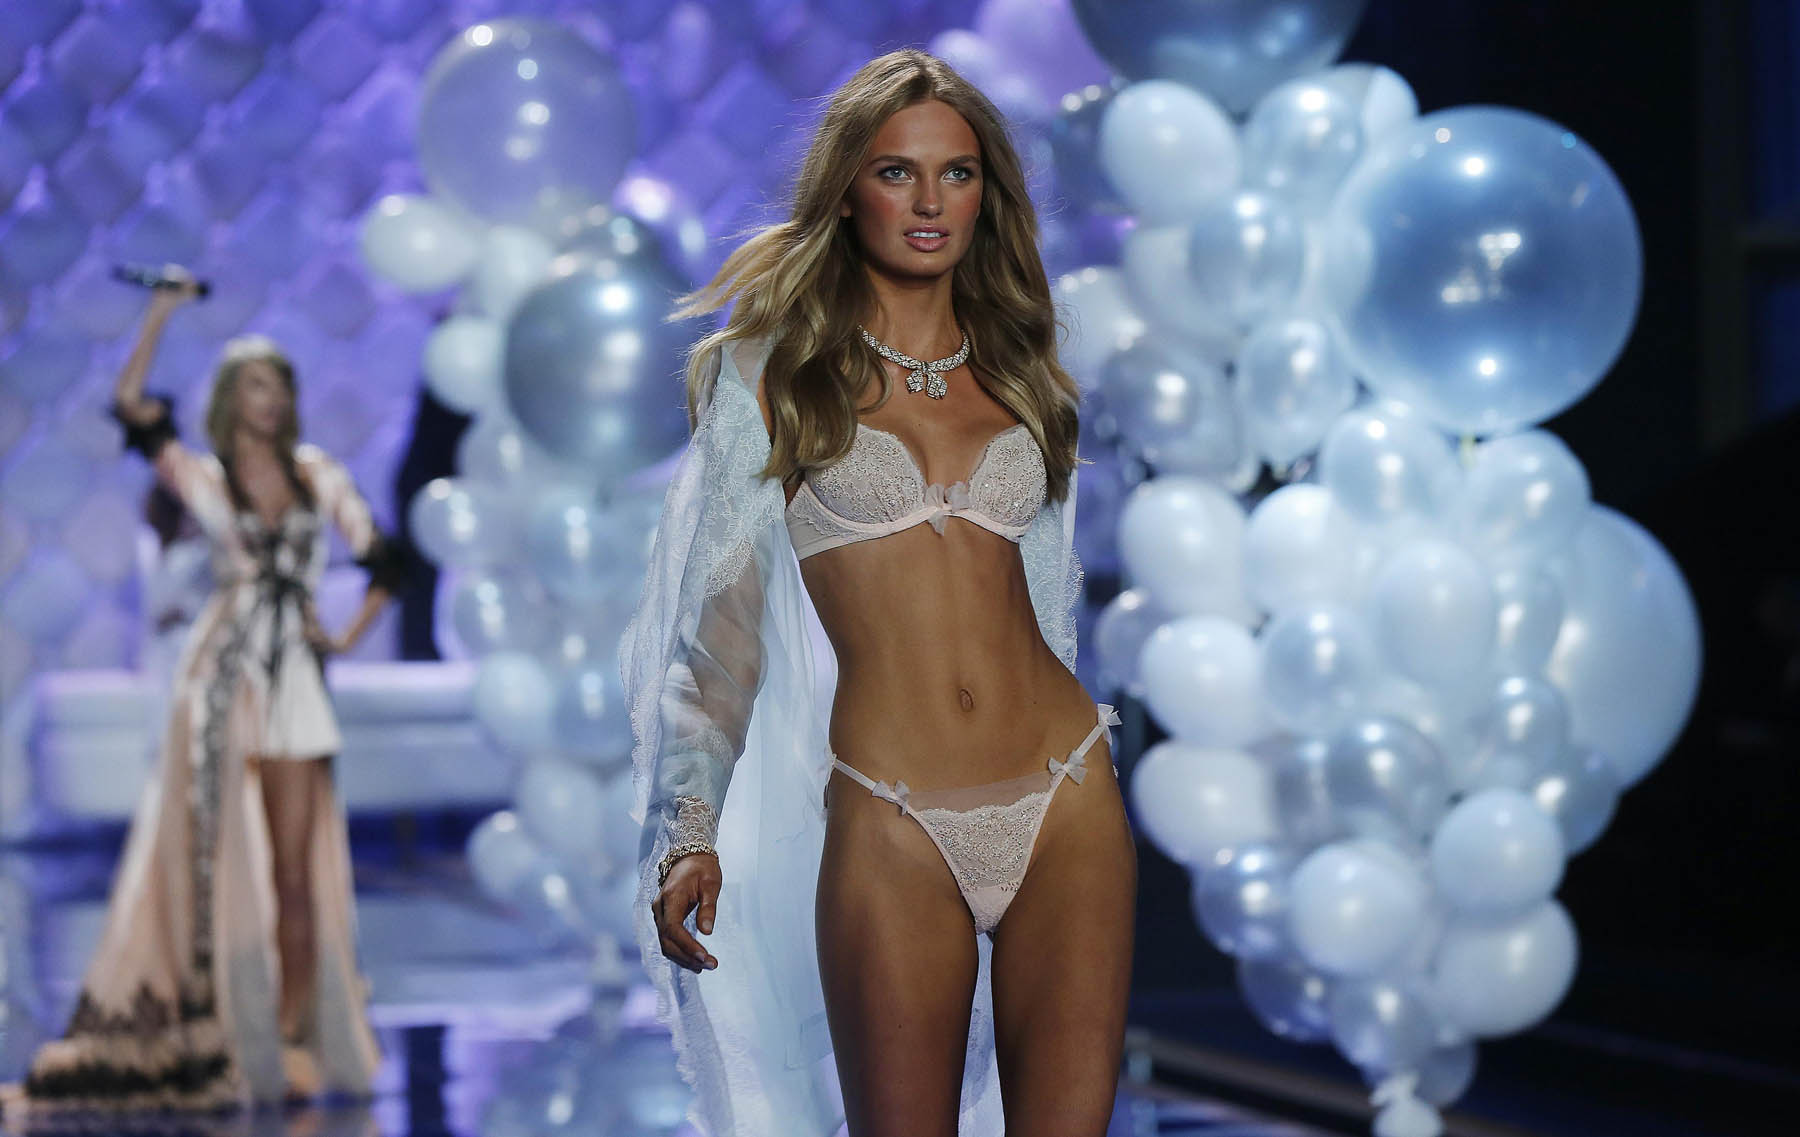 A model presents a creation as singer Swift performs during the 2014 Victoria's Secret Fashion Show in London